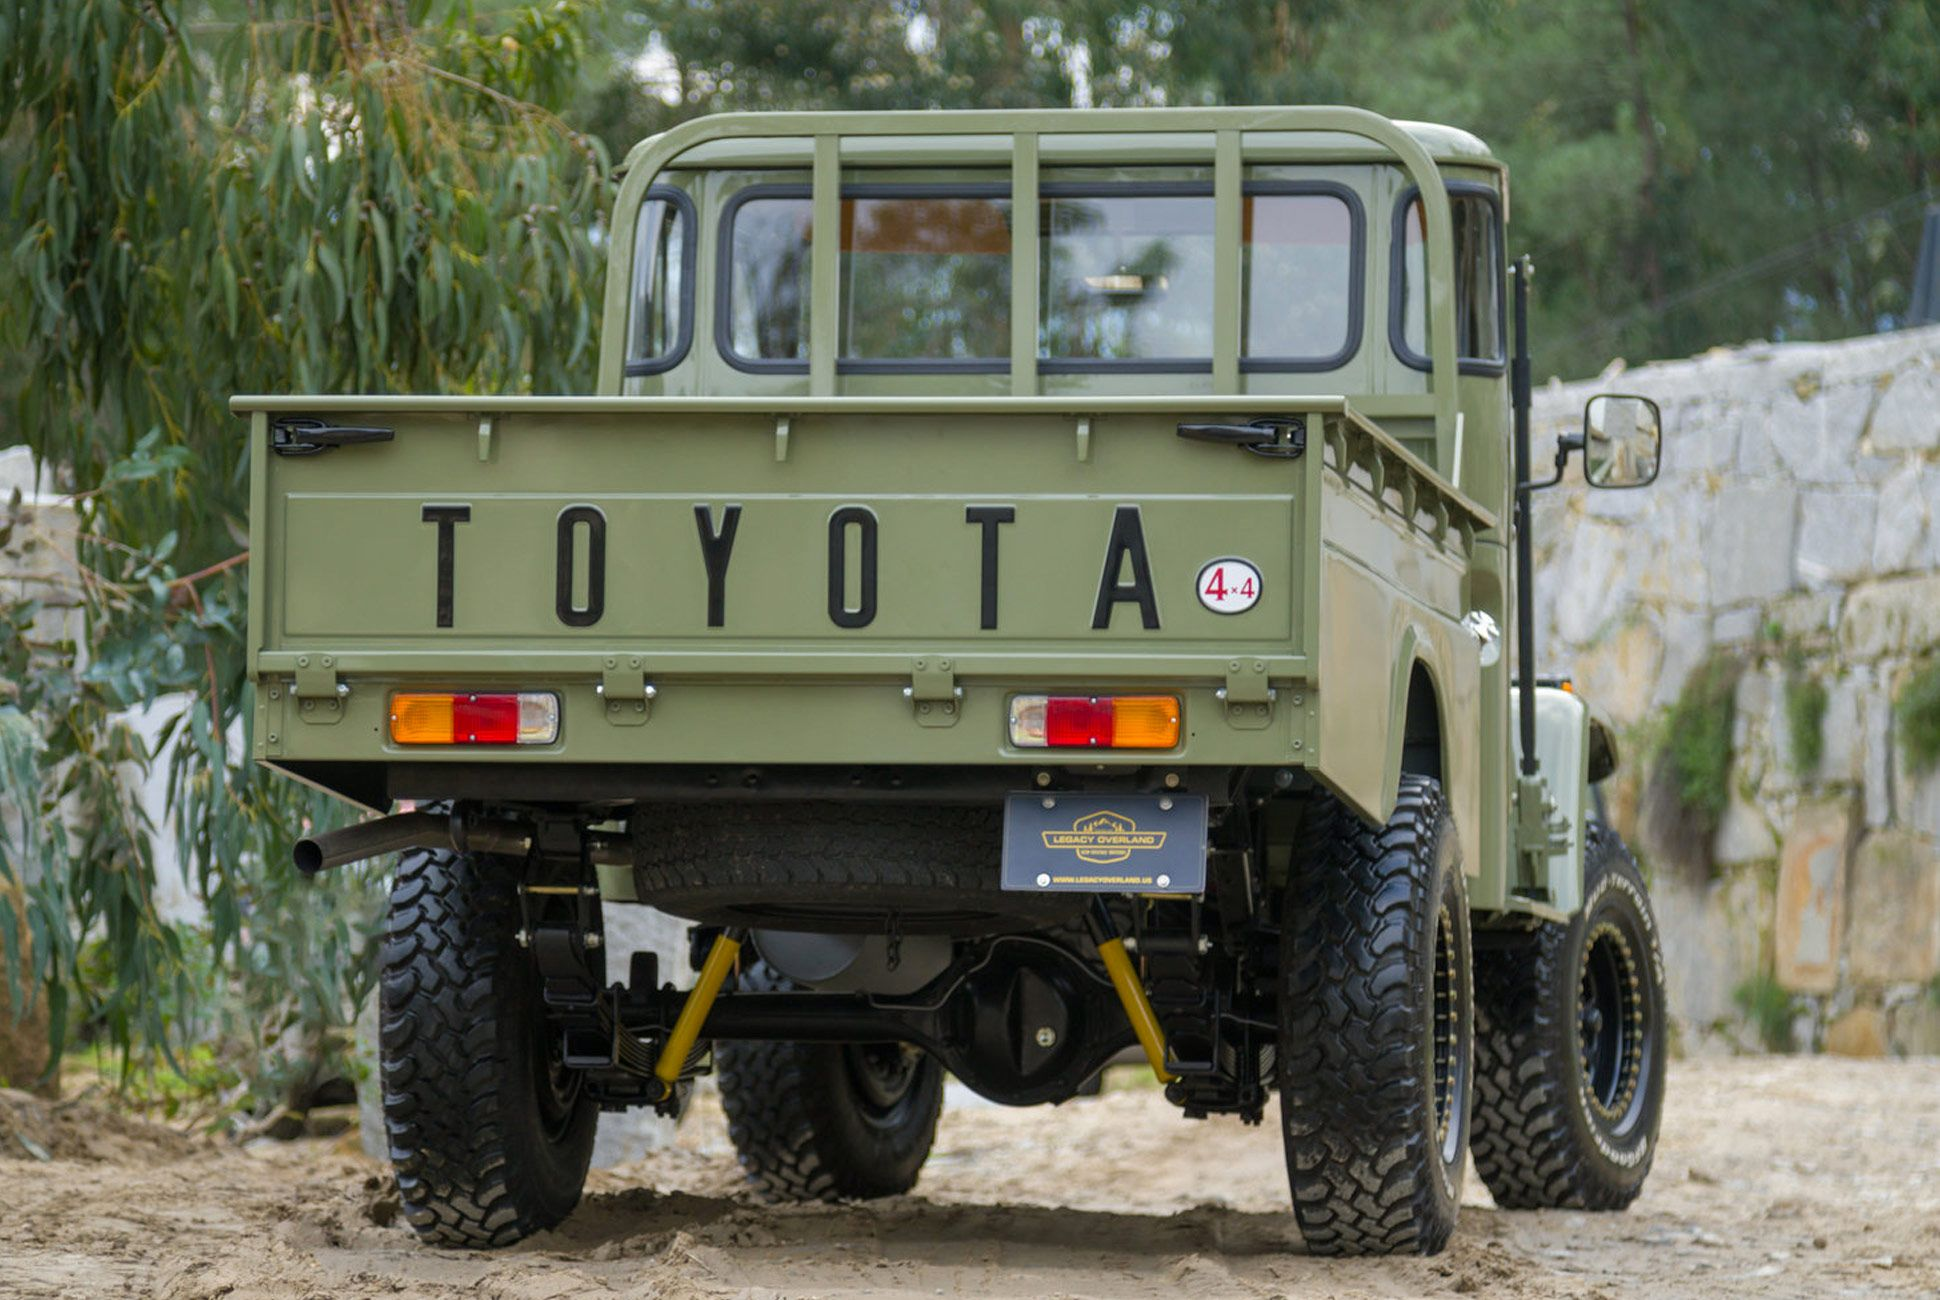 Overland-Pickup-Toyota-gear-patrol-7